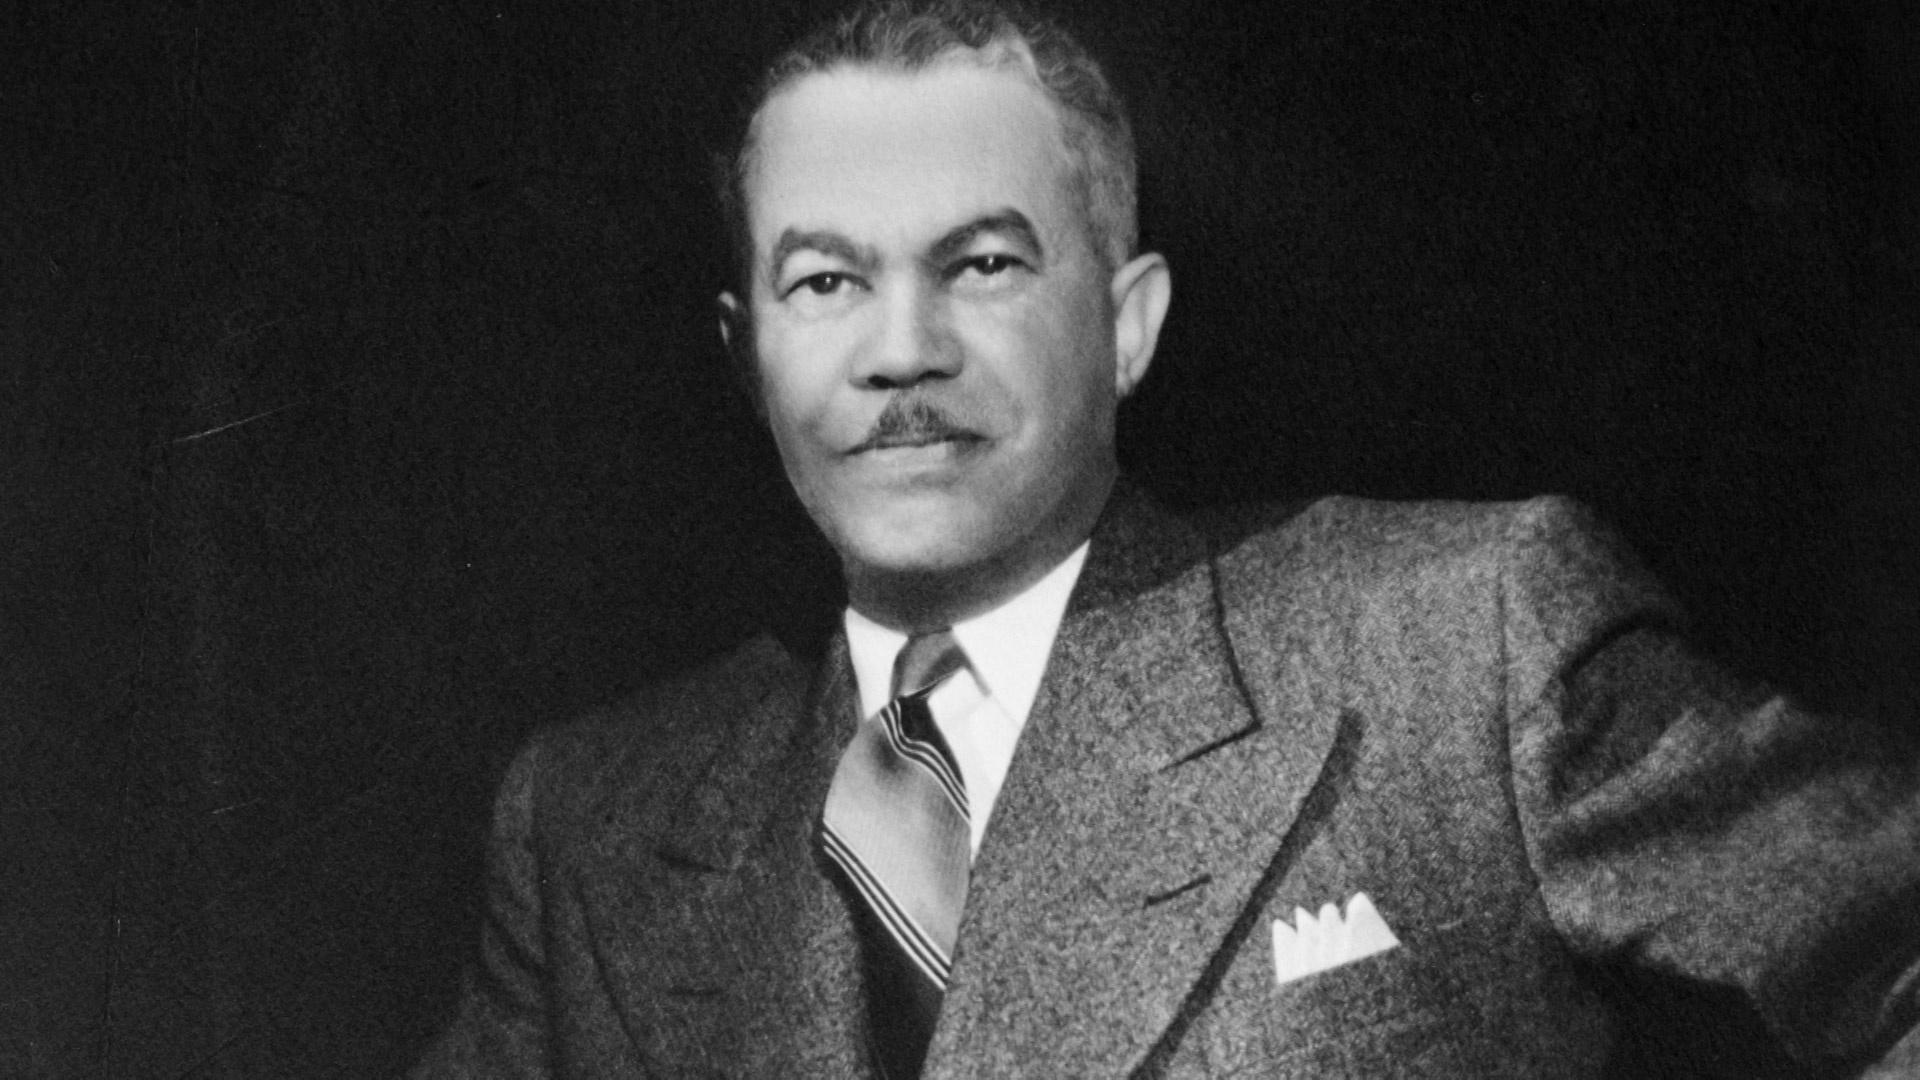 Black and white portrait of a man wearing a suit, looking into the camera with a neutral expression